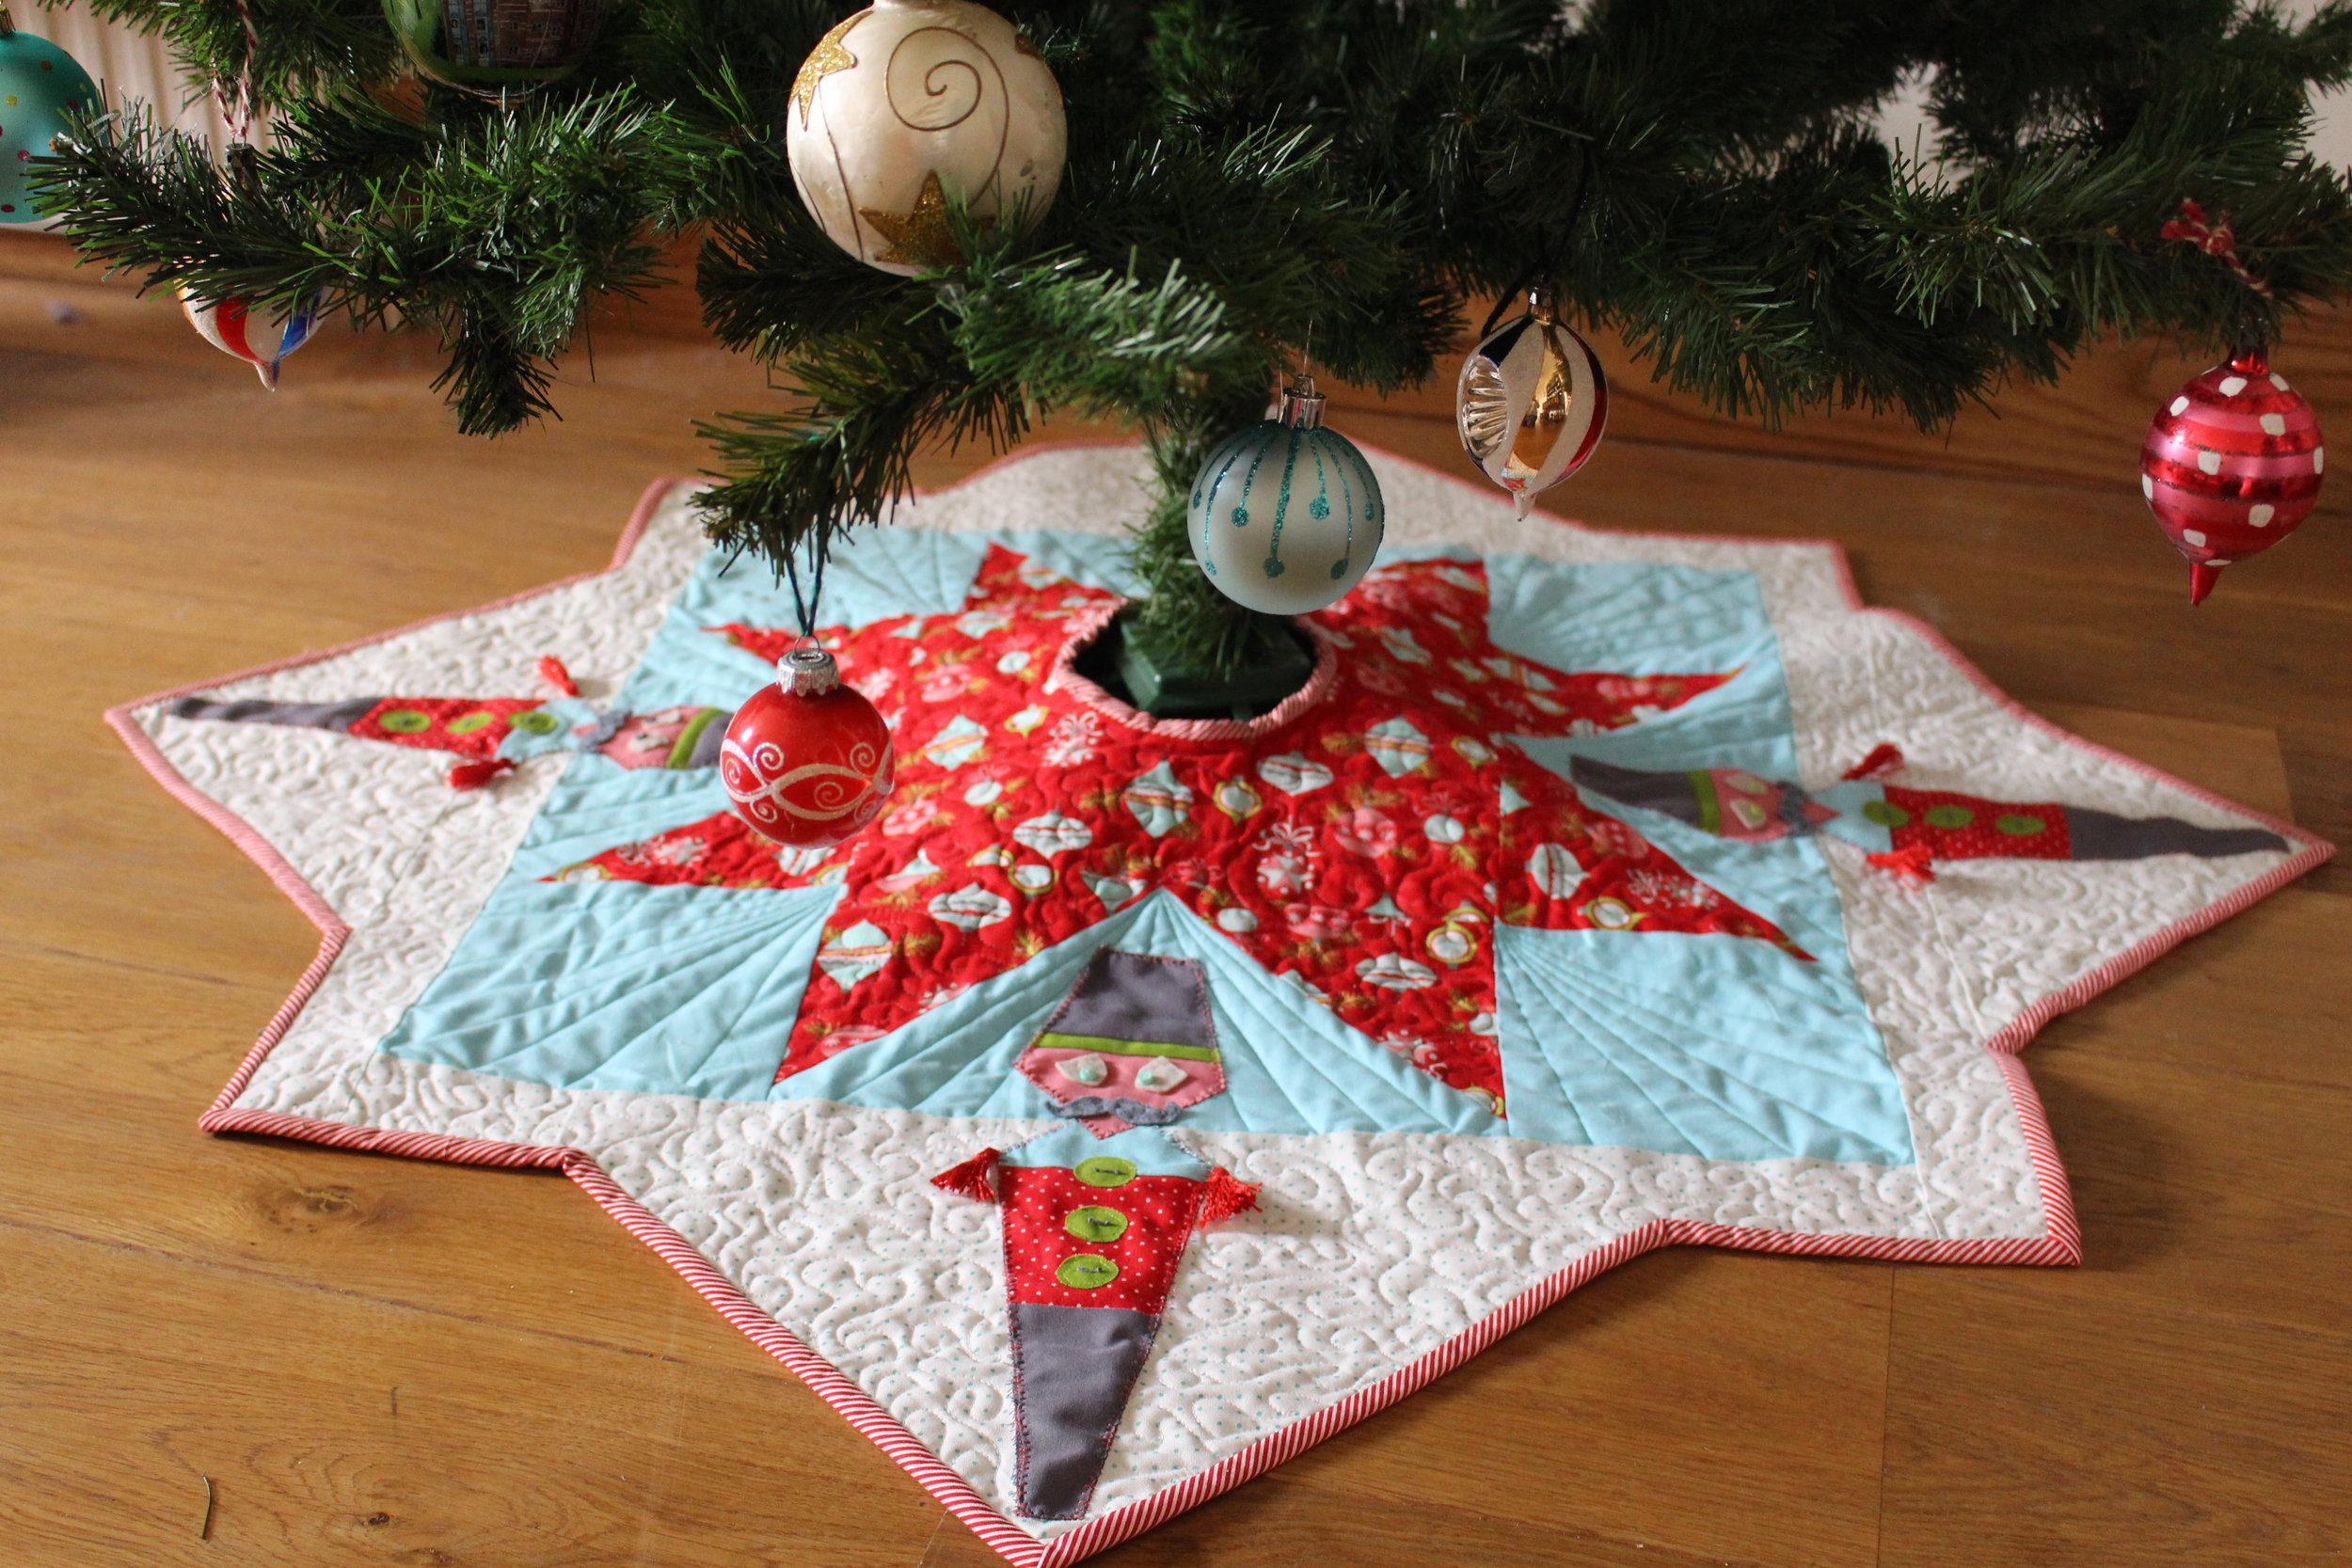 Nutcracker tree skirt.JPG